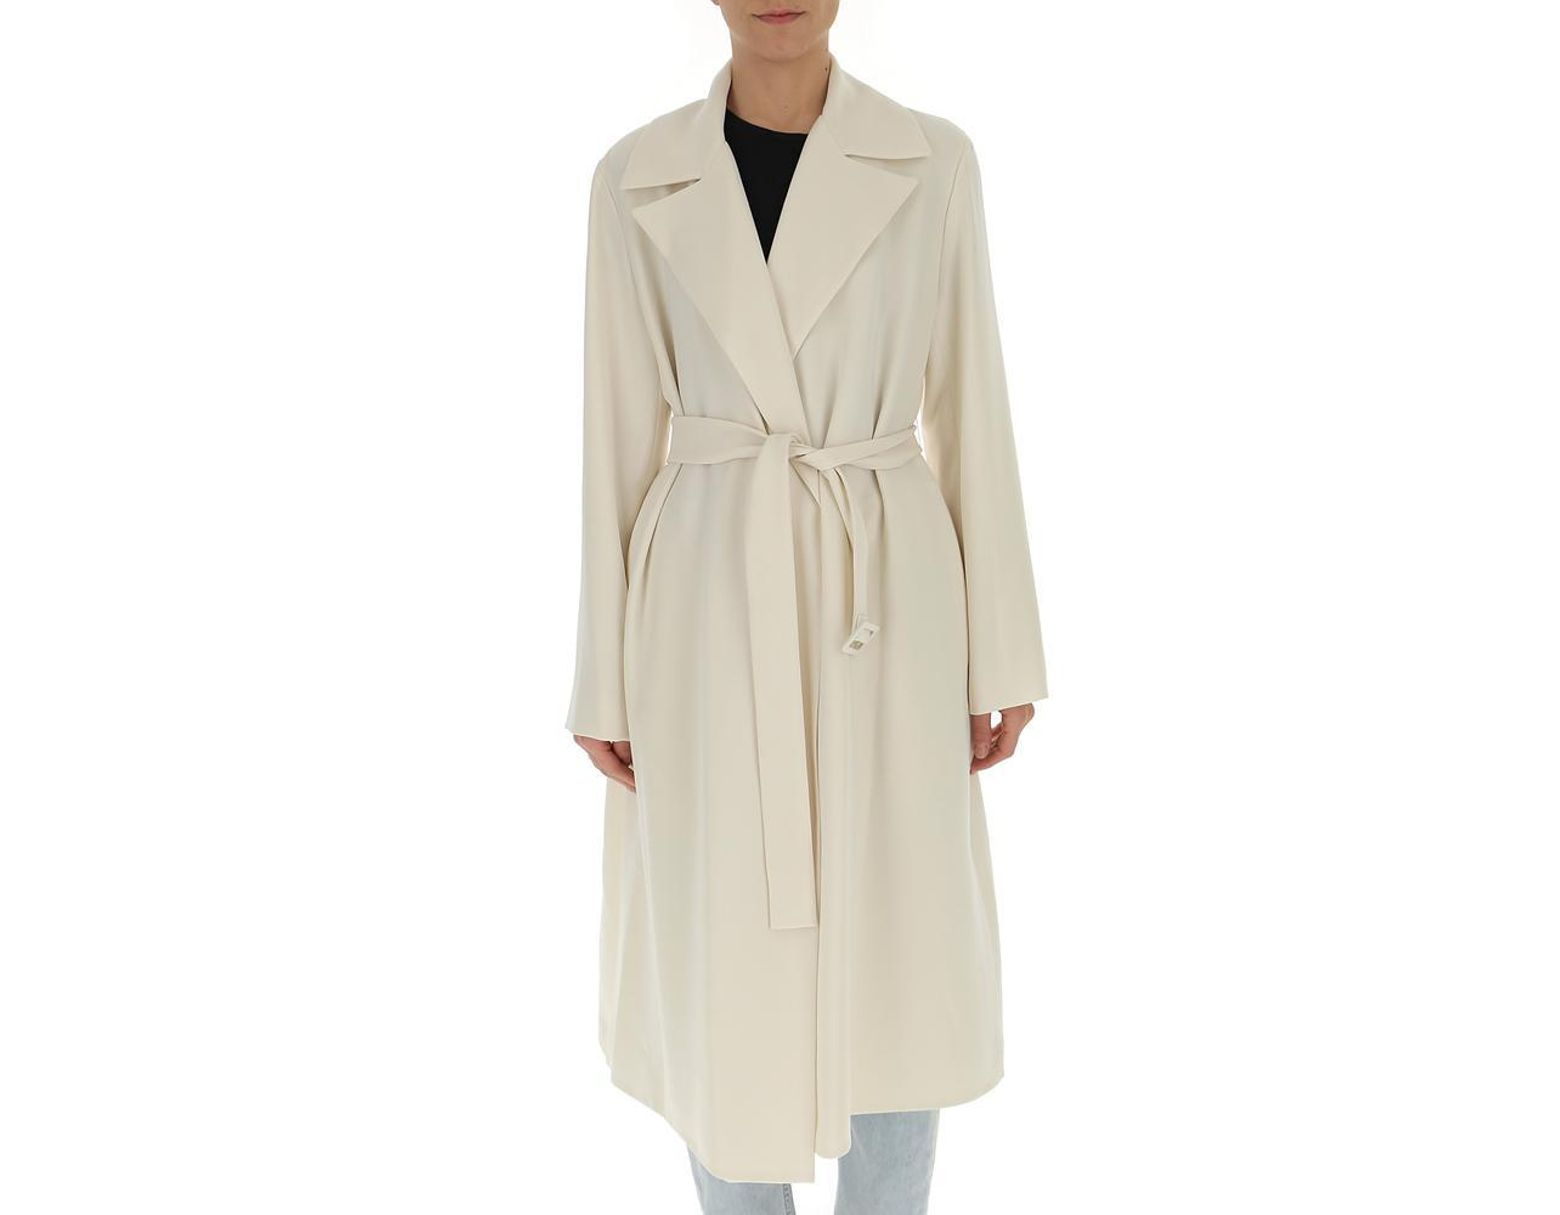 648a32f3a0c Theory Classic Crepe Trench Coat in Natural - Lyst